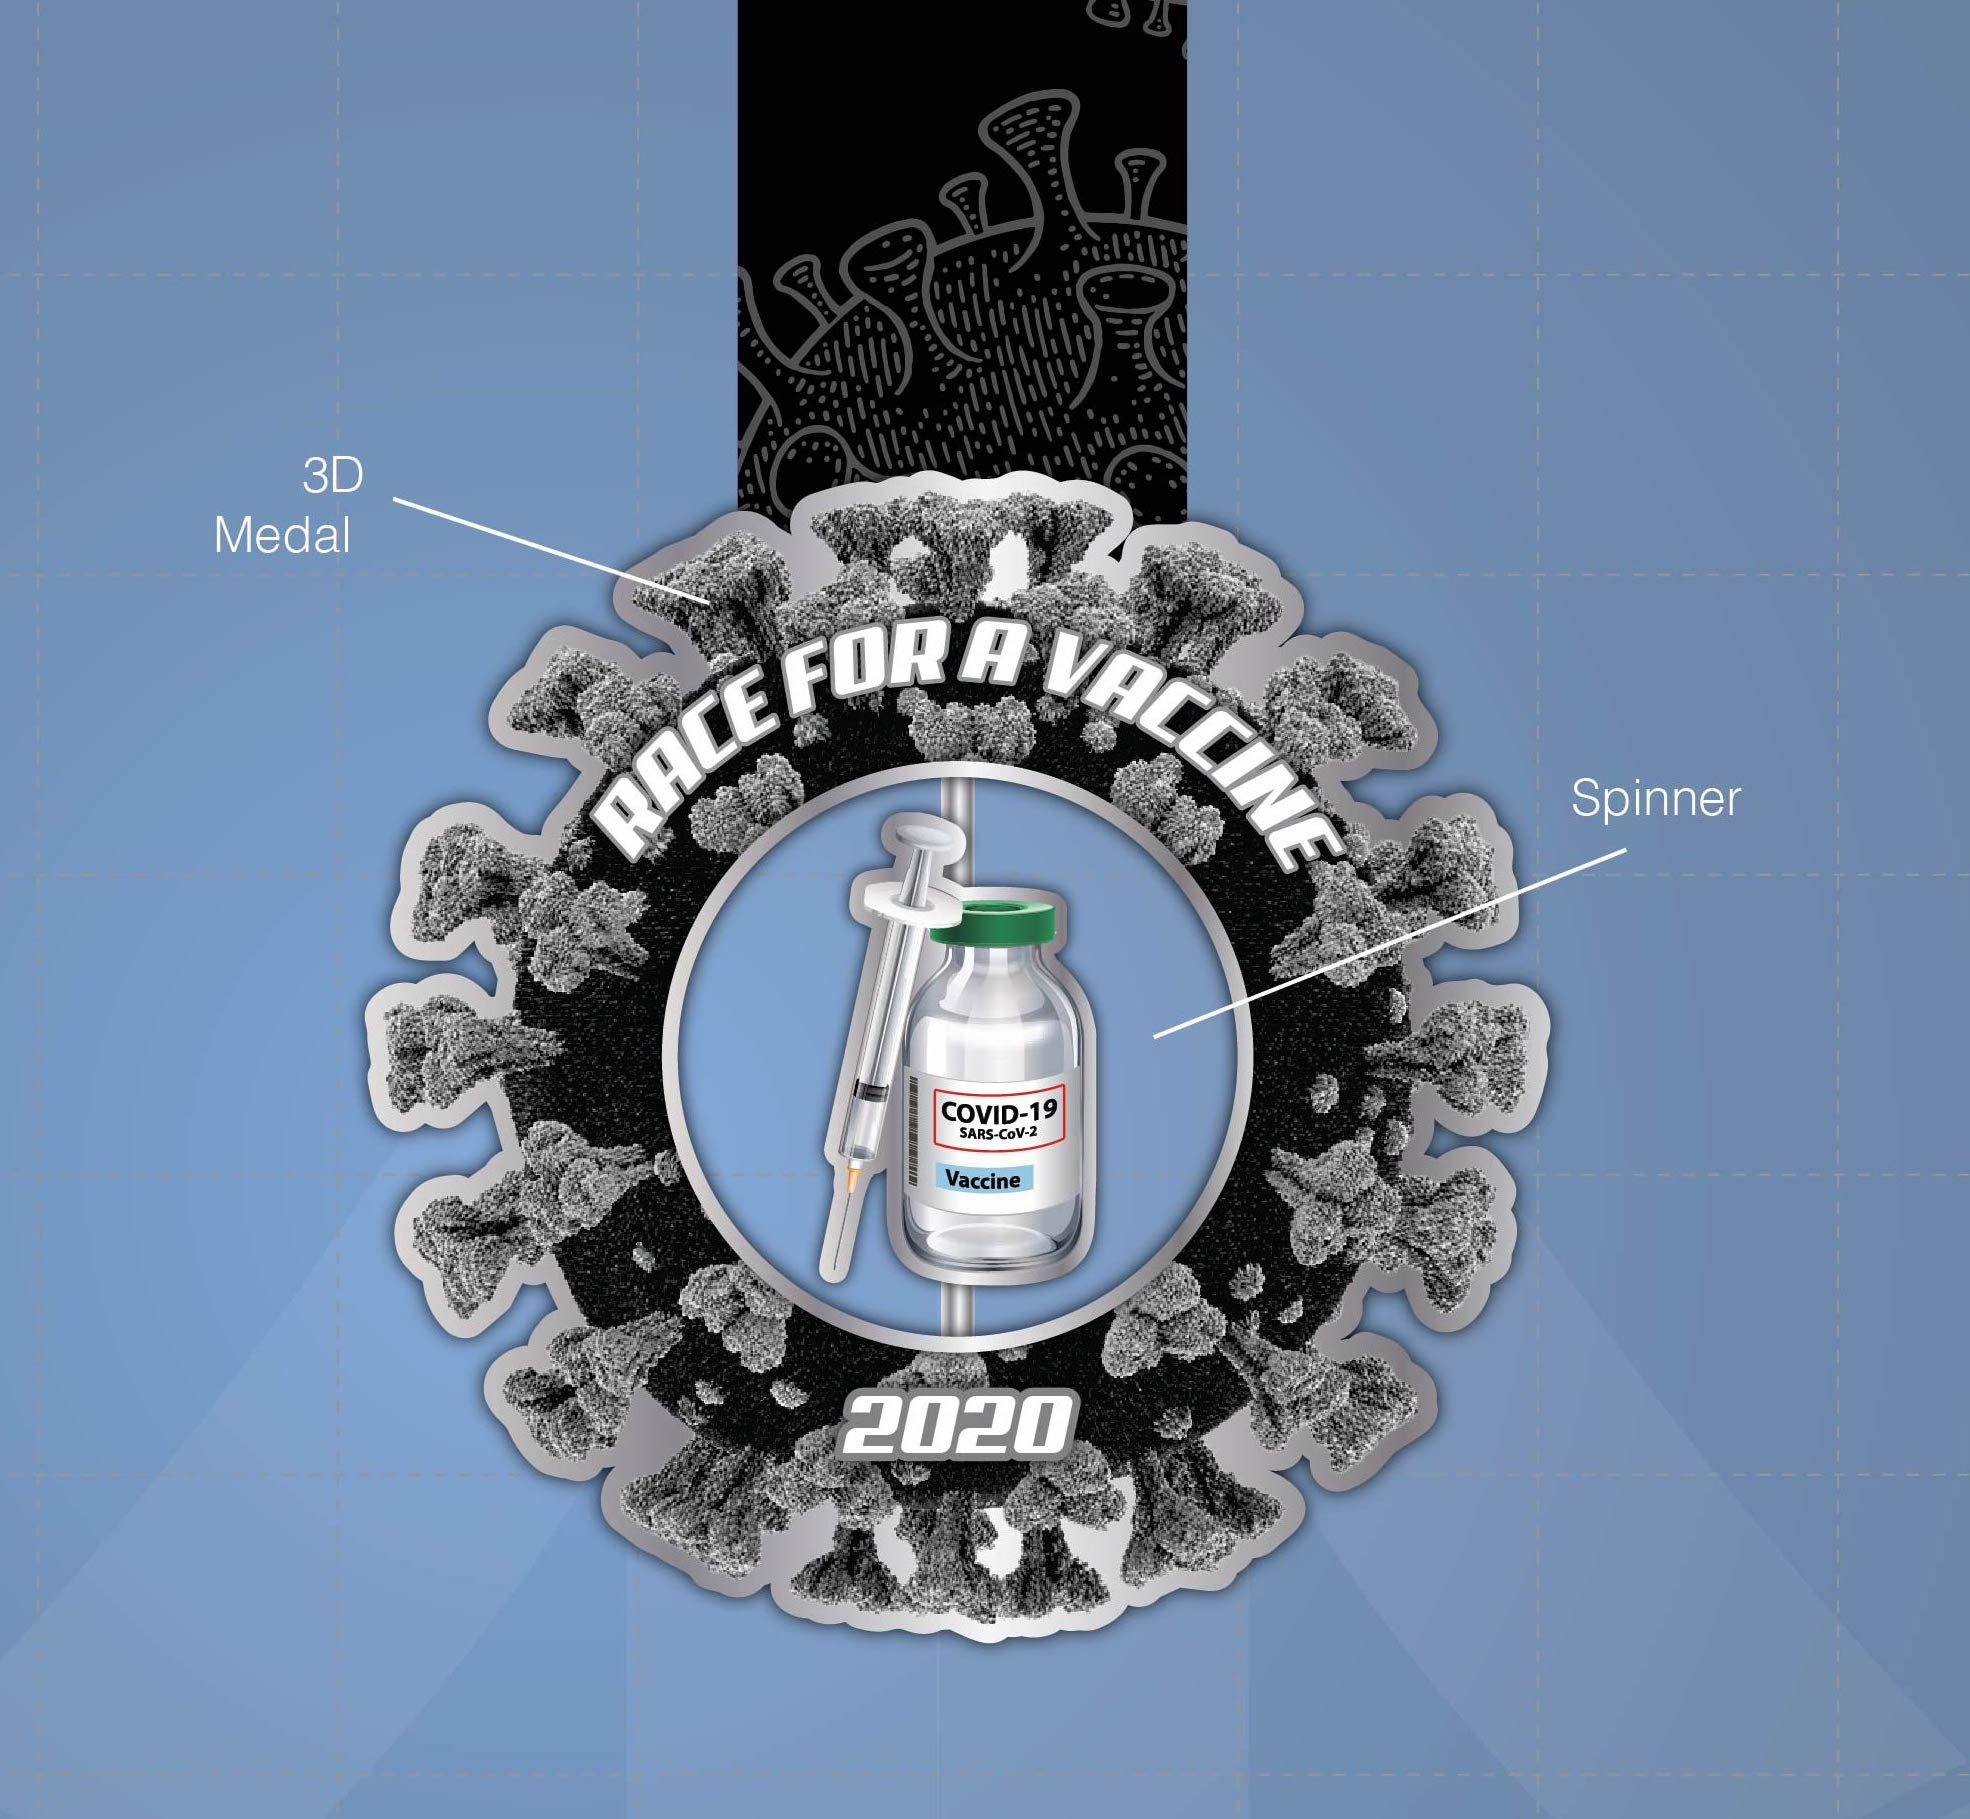 2020 Race For A Vaccine Medals r1